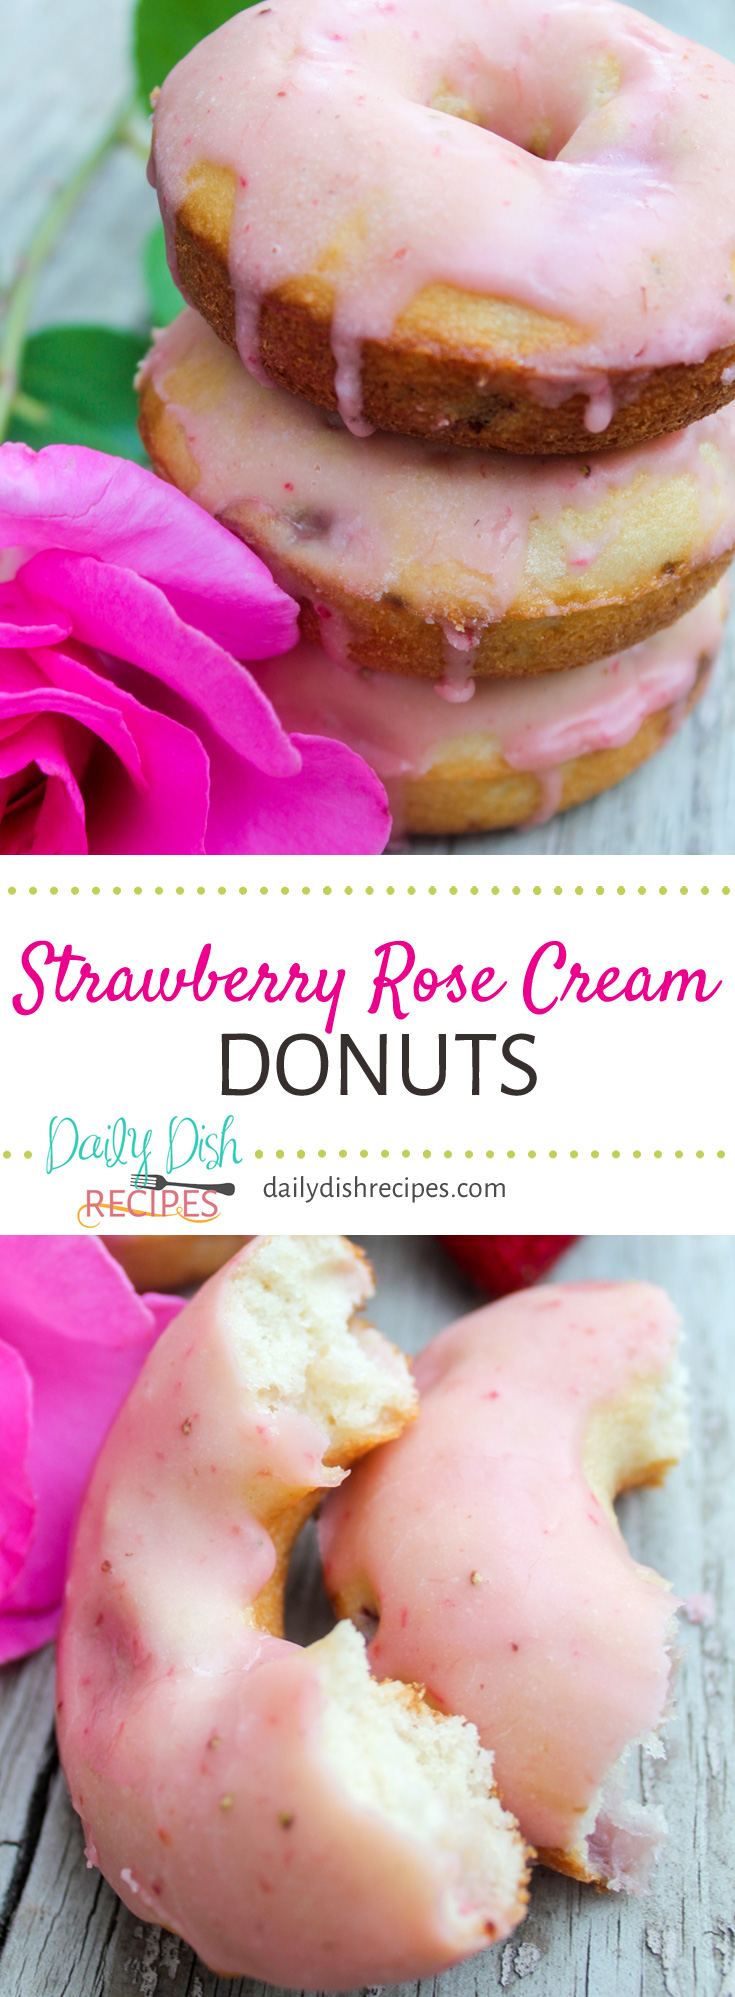 Baked Strawberry Rose Cream Donuts are so easy, come out fluffy and soft and are drizzled with a wonderful homemade strawberry icing. You won't be sure if you're eating dessert or breakfast, but still... they are GREAT for brunch!